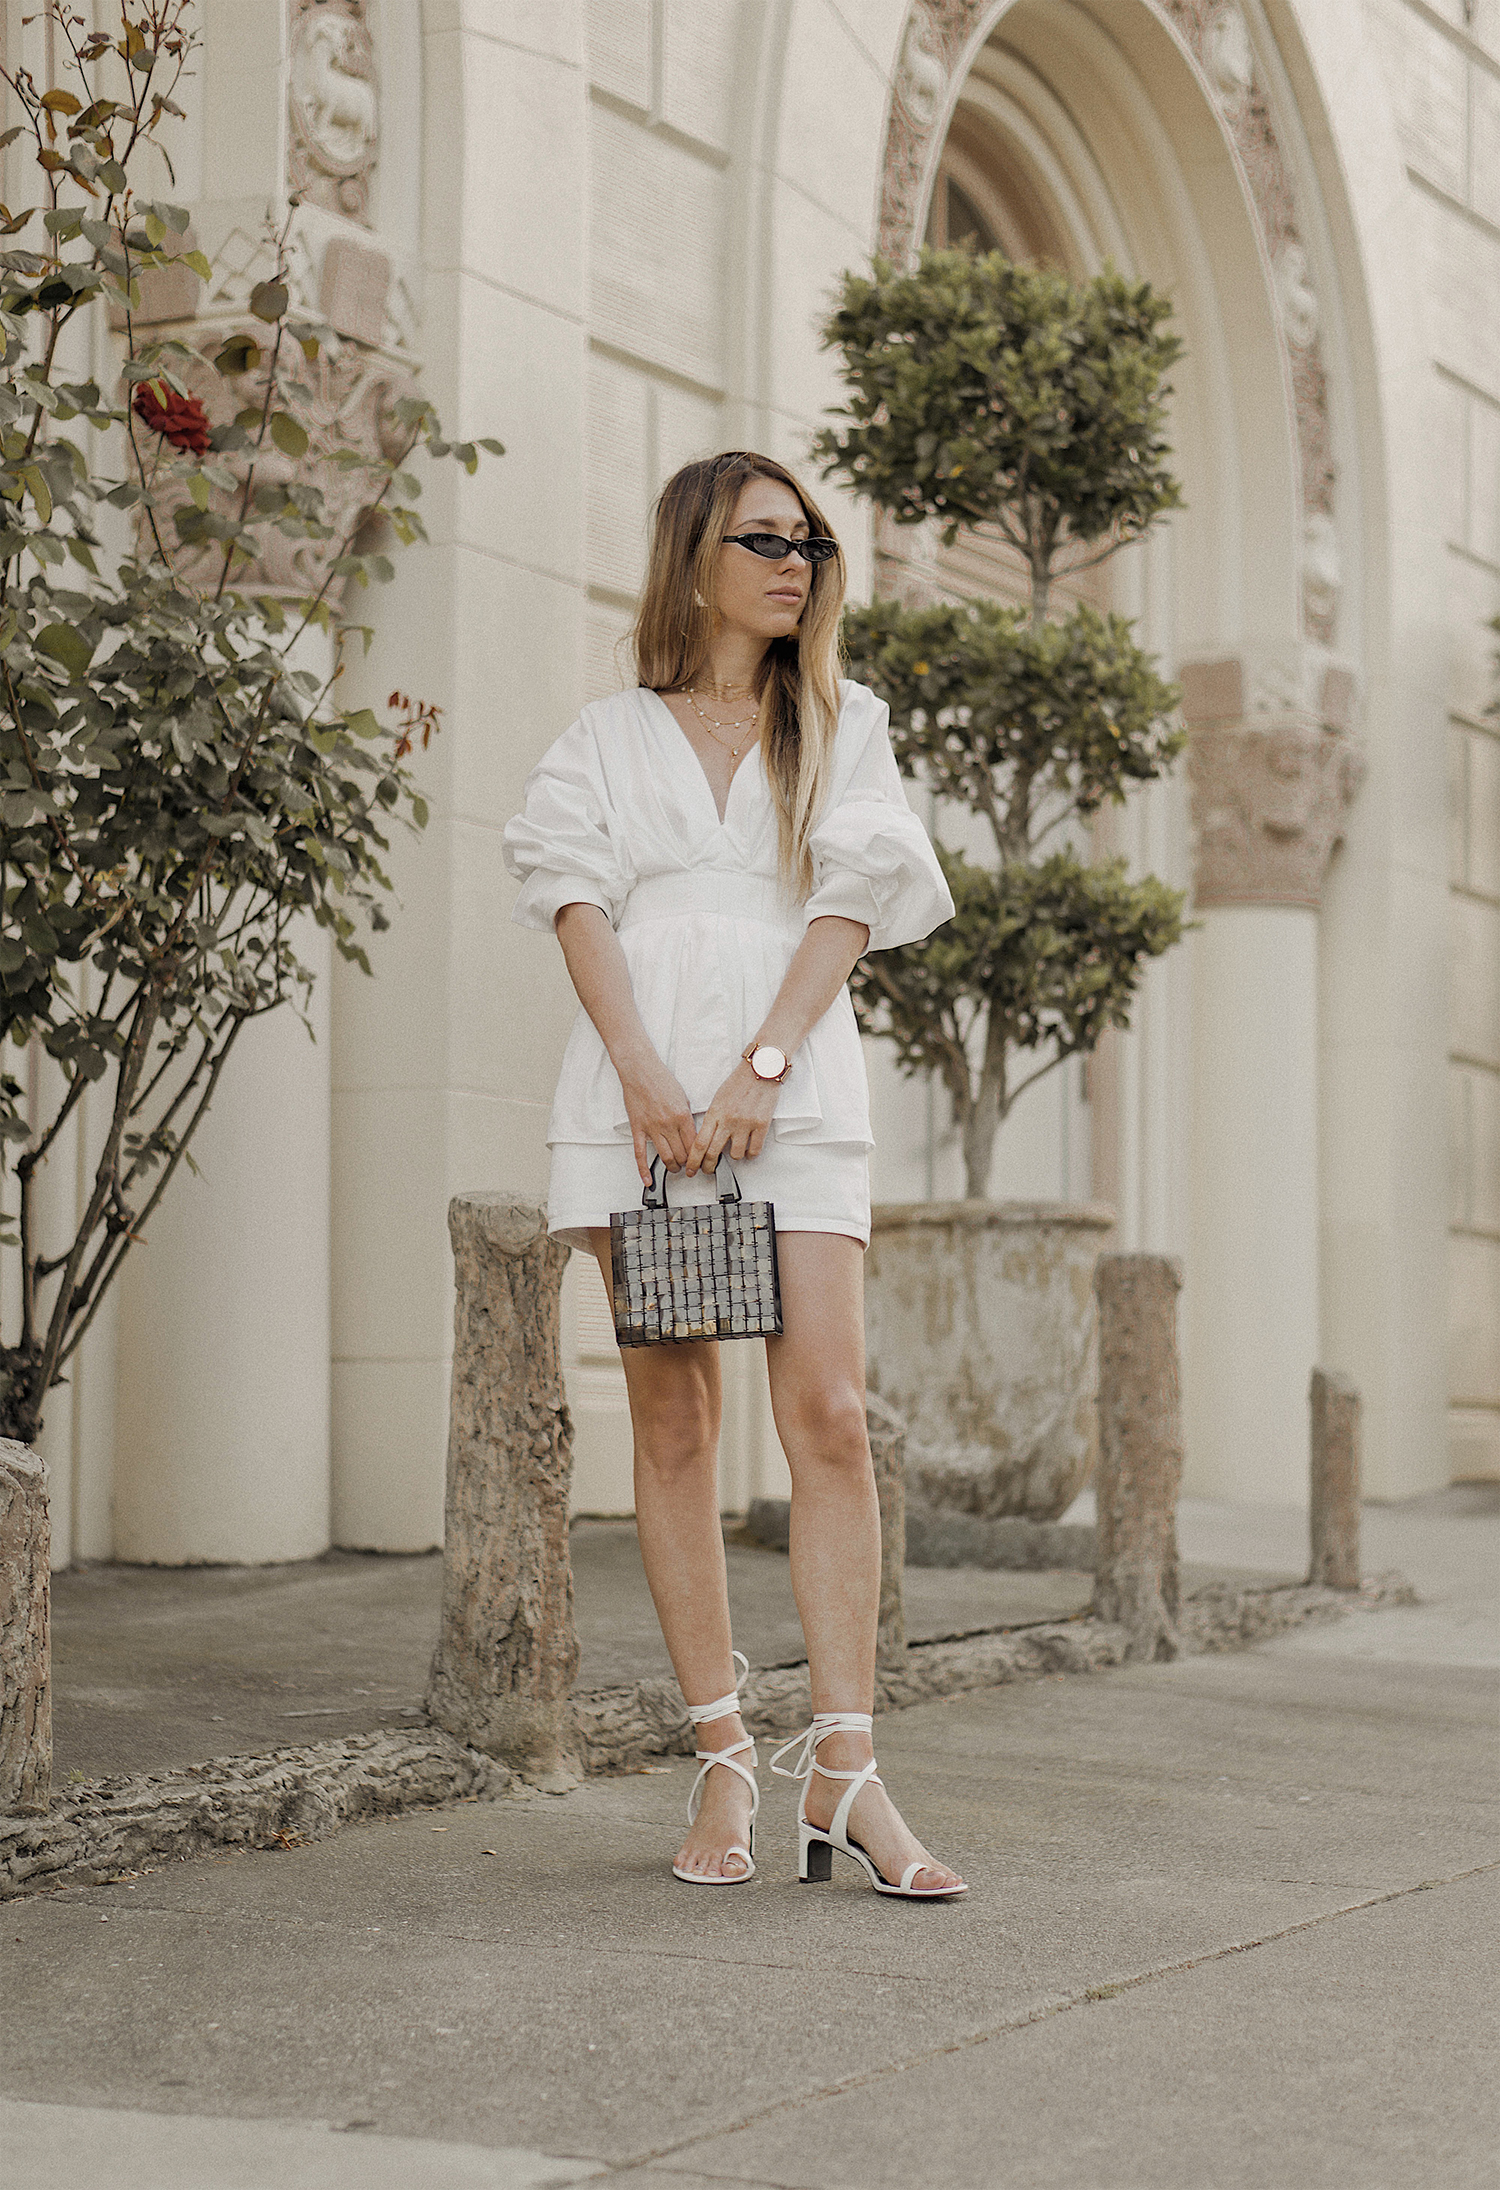 white_outfit_look_ideas_street_style_total_white_Céline_inspired_Ring_Toe_Lace_Up_Sandals_summer_san_francisco_fashion_blogger_bay_area_the_white_ocean_lena_juice_14